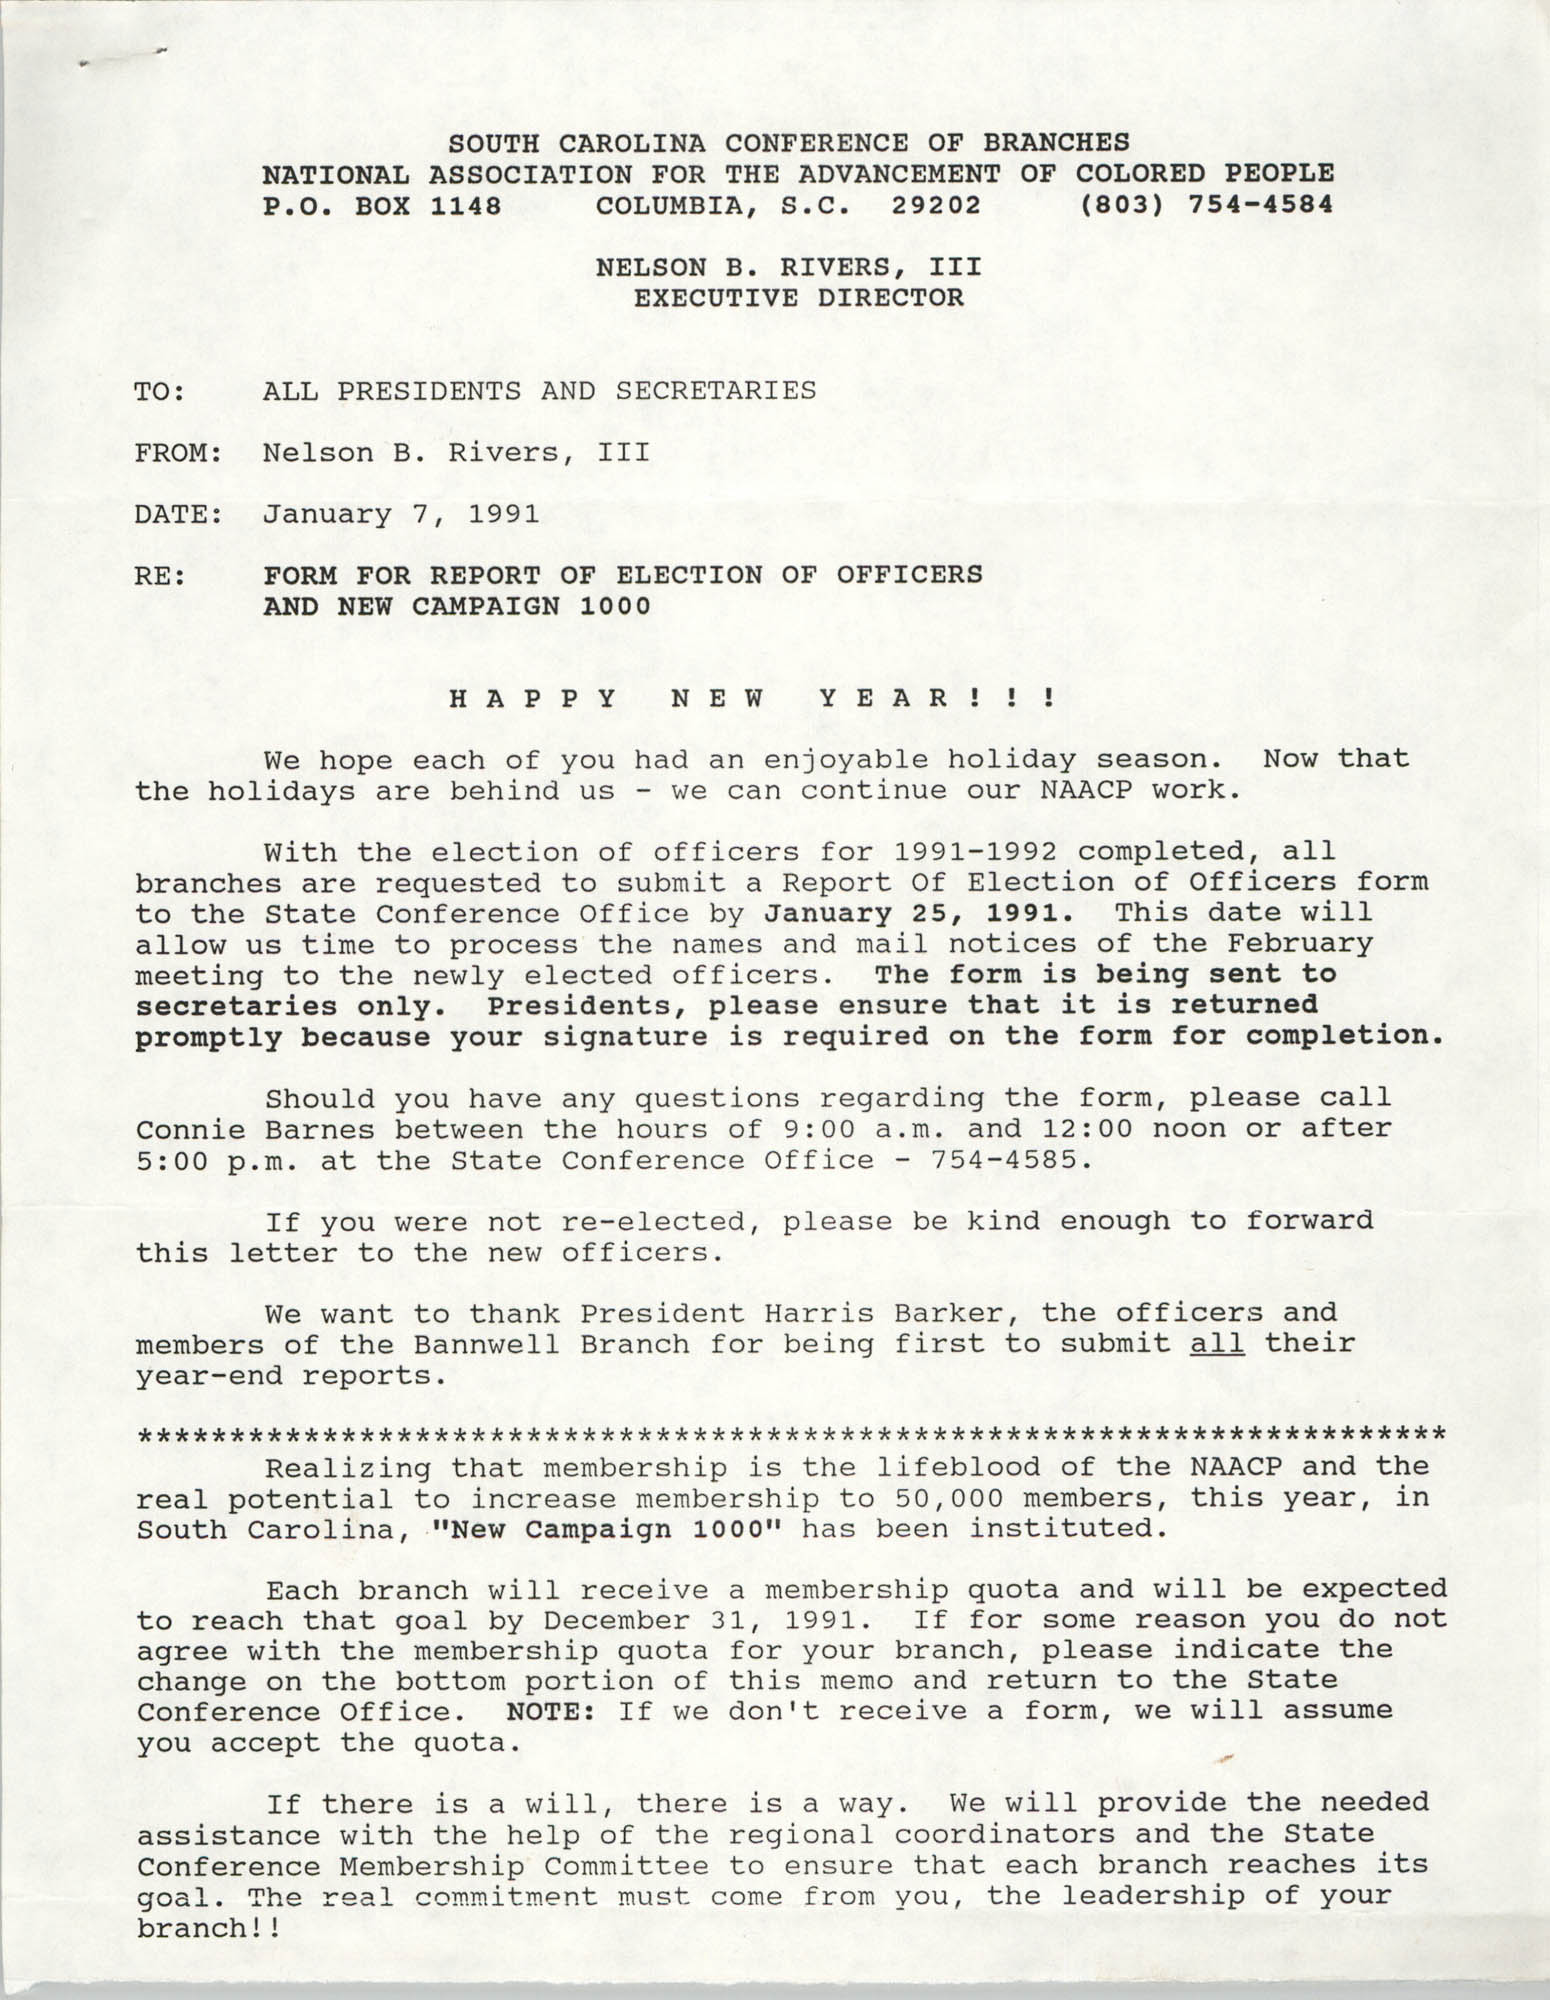 South Carolina Conference of Branches of the NAACP Memorandum, January 7, 1991